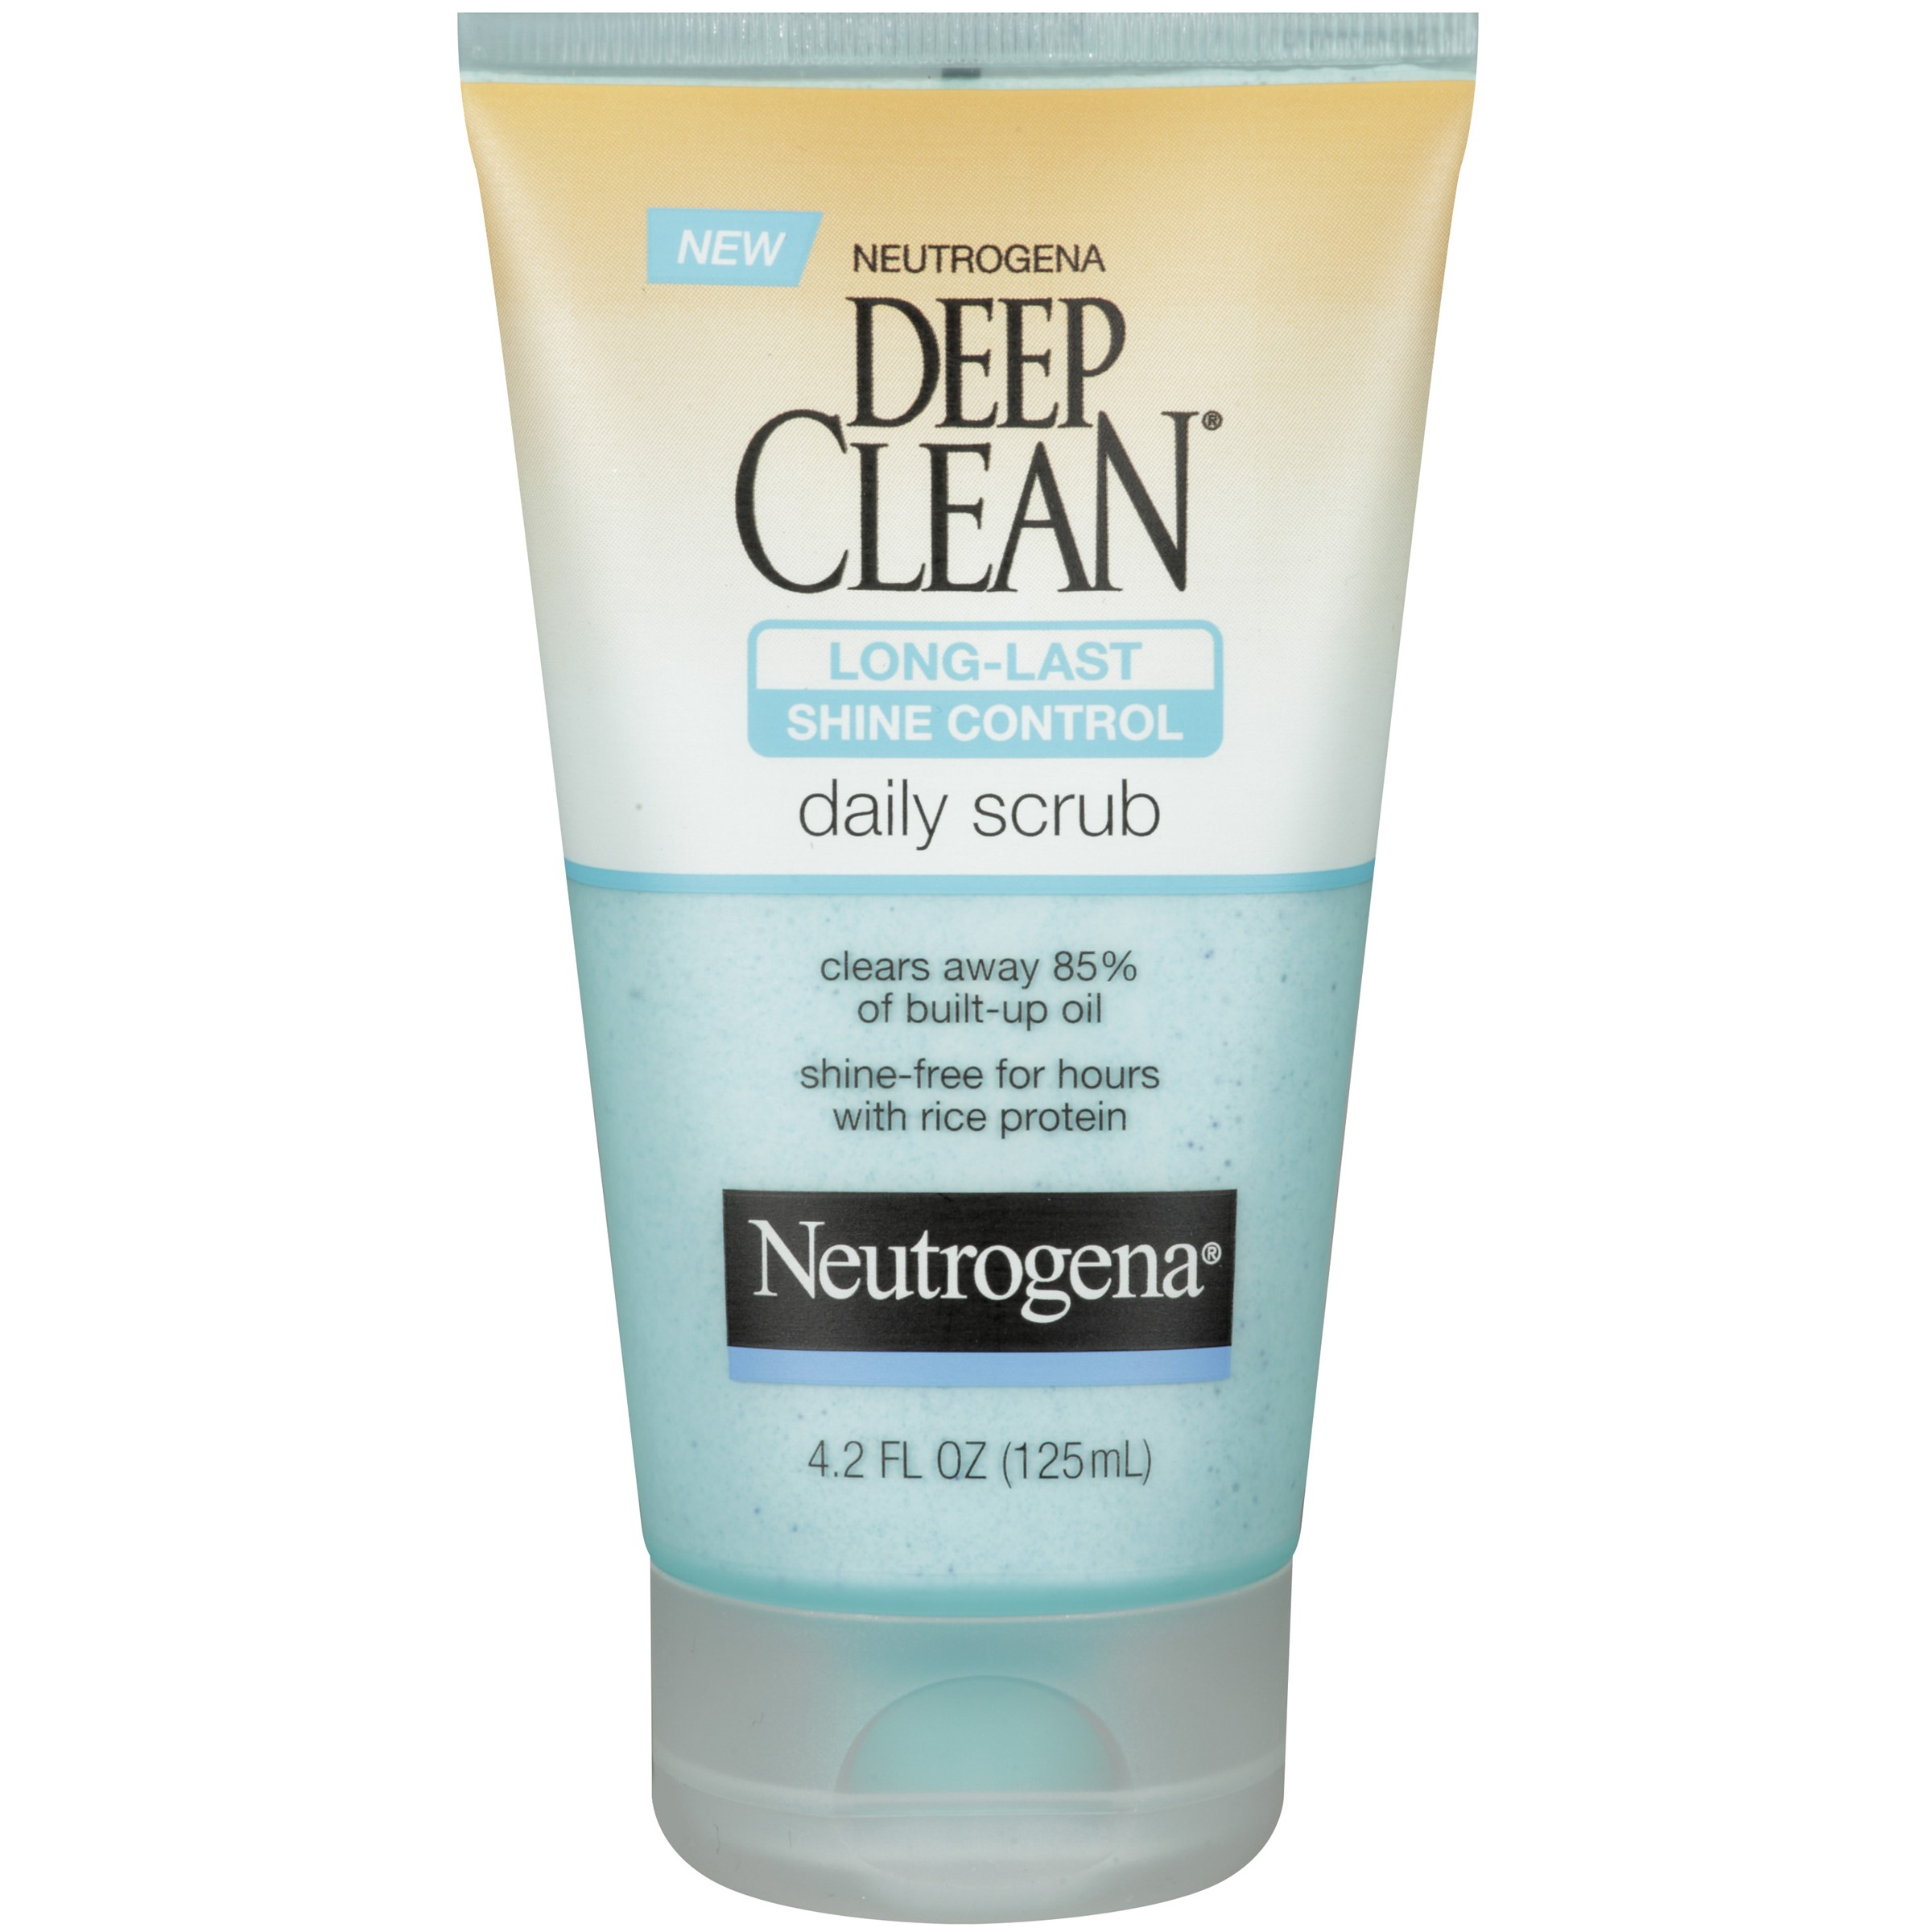 Neutrogena Deep Clean Shine Control Daily Scrub, 4.2 Fl Oz